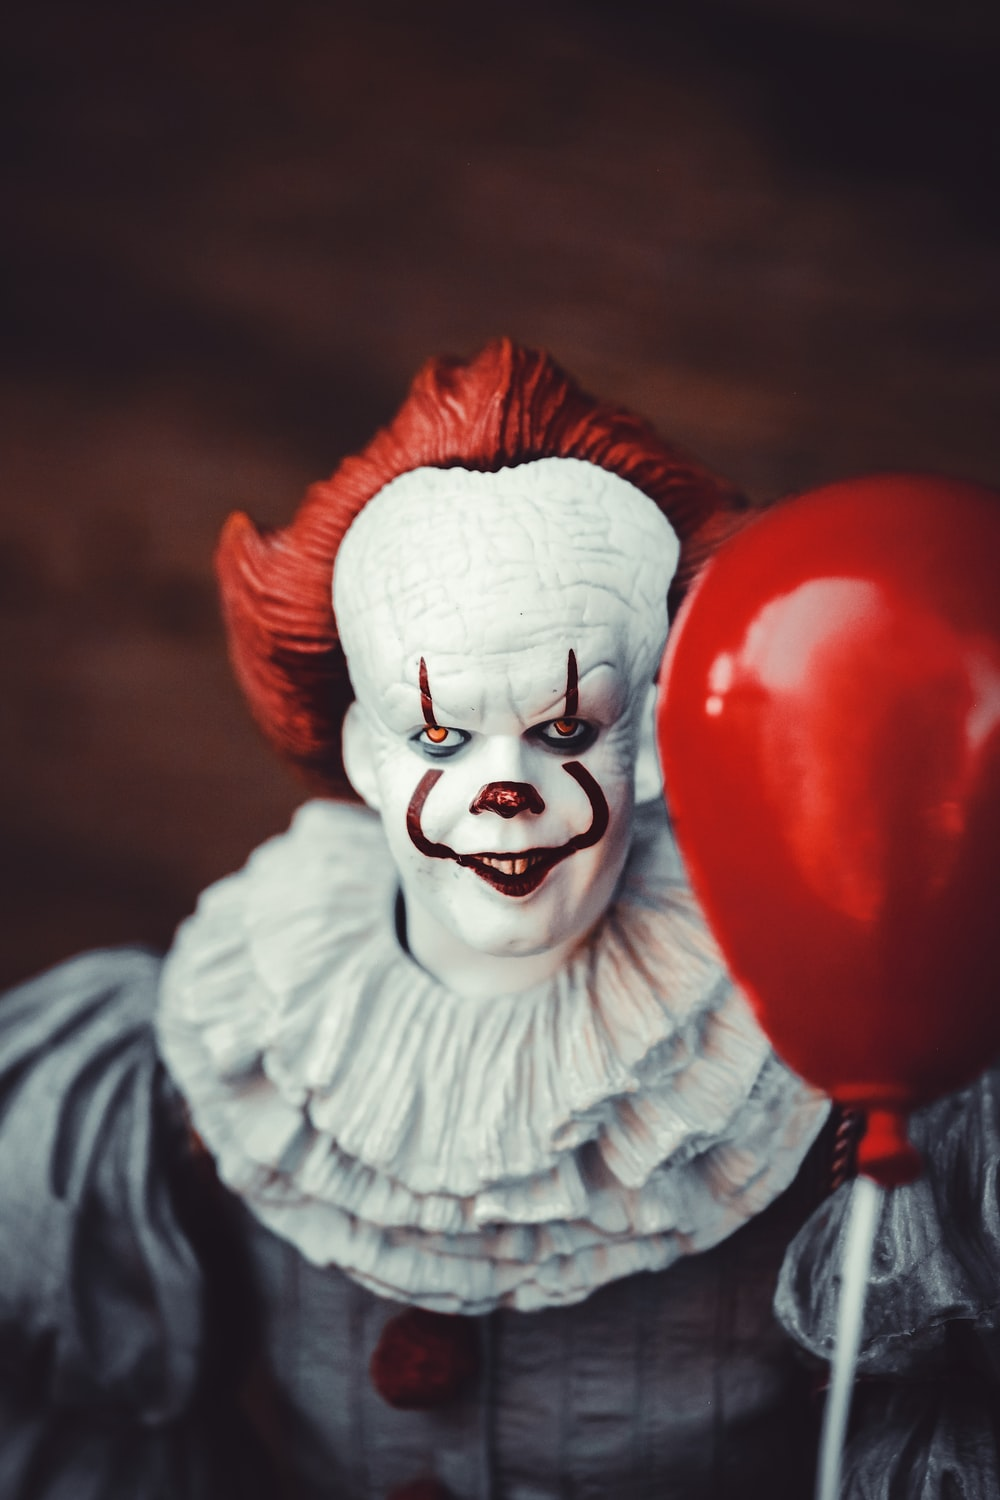 500 Scary Clown Pictures Hd Download Free Images On Unsplash